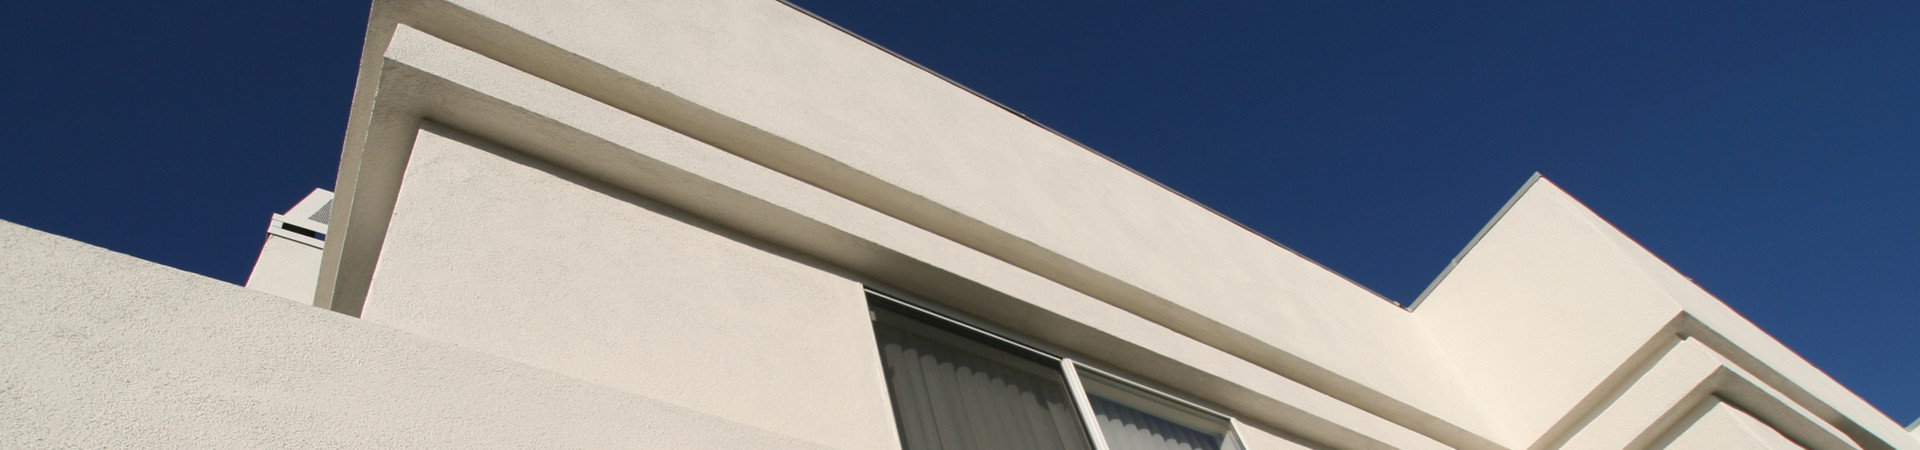 Older stucco can be restored and strengthened by the installation of CHIC Advanced Coating.